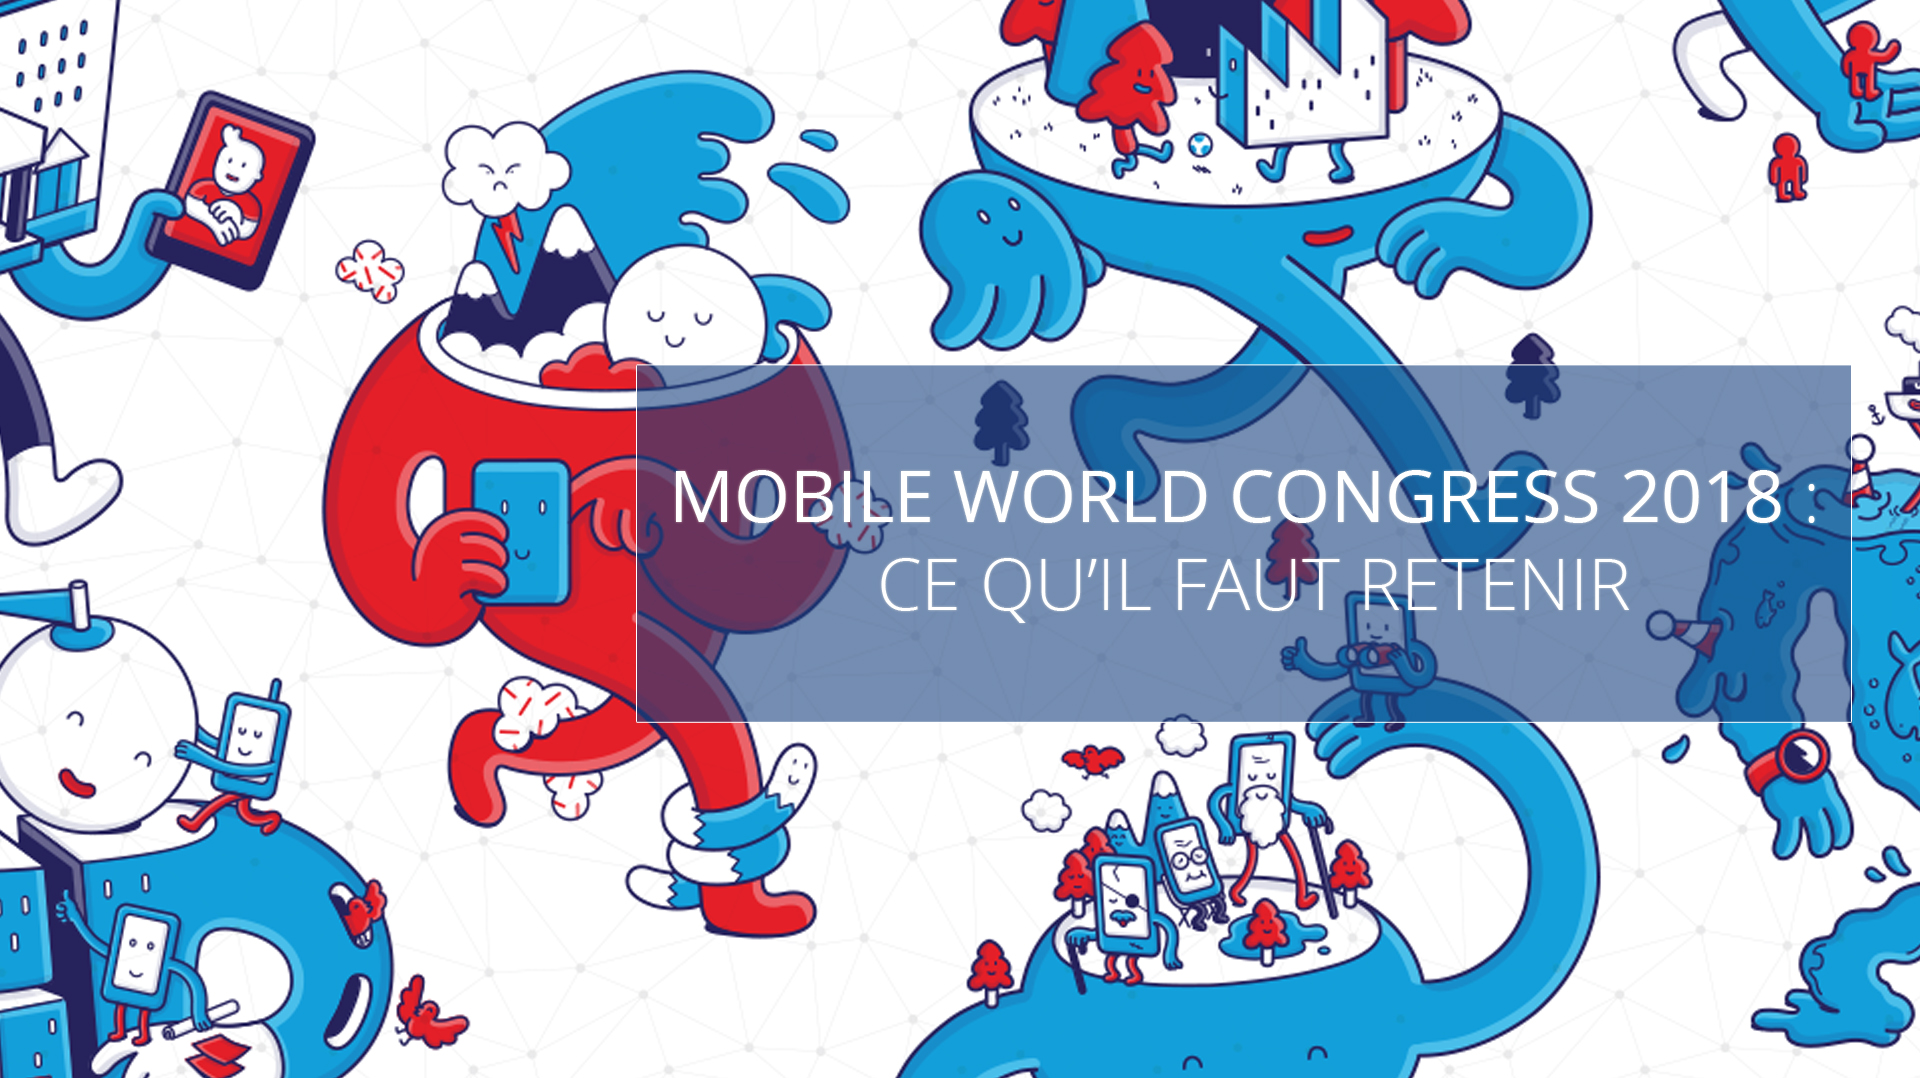 Illusatration Mobile World Congress 2018 : ce qu'il faut retenir